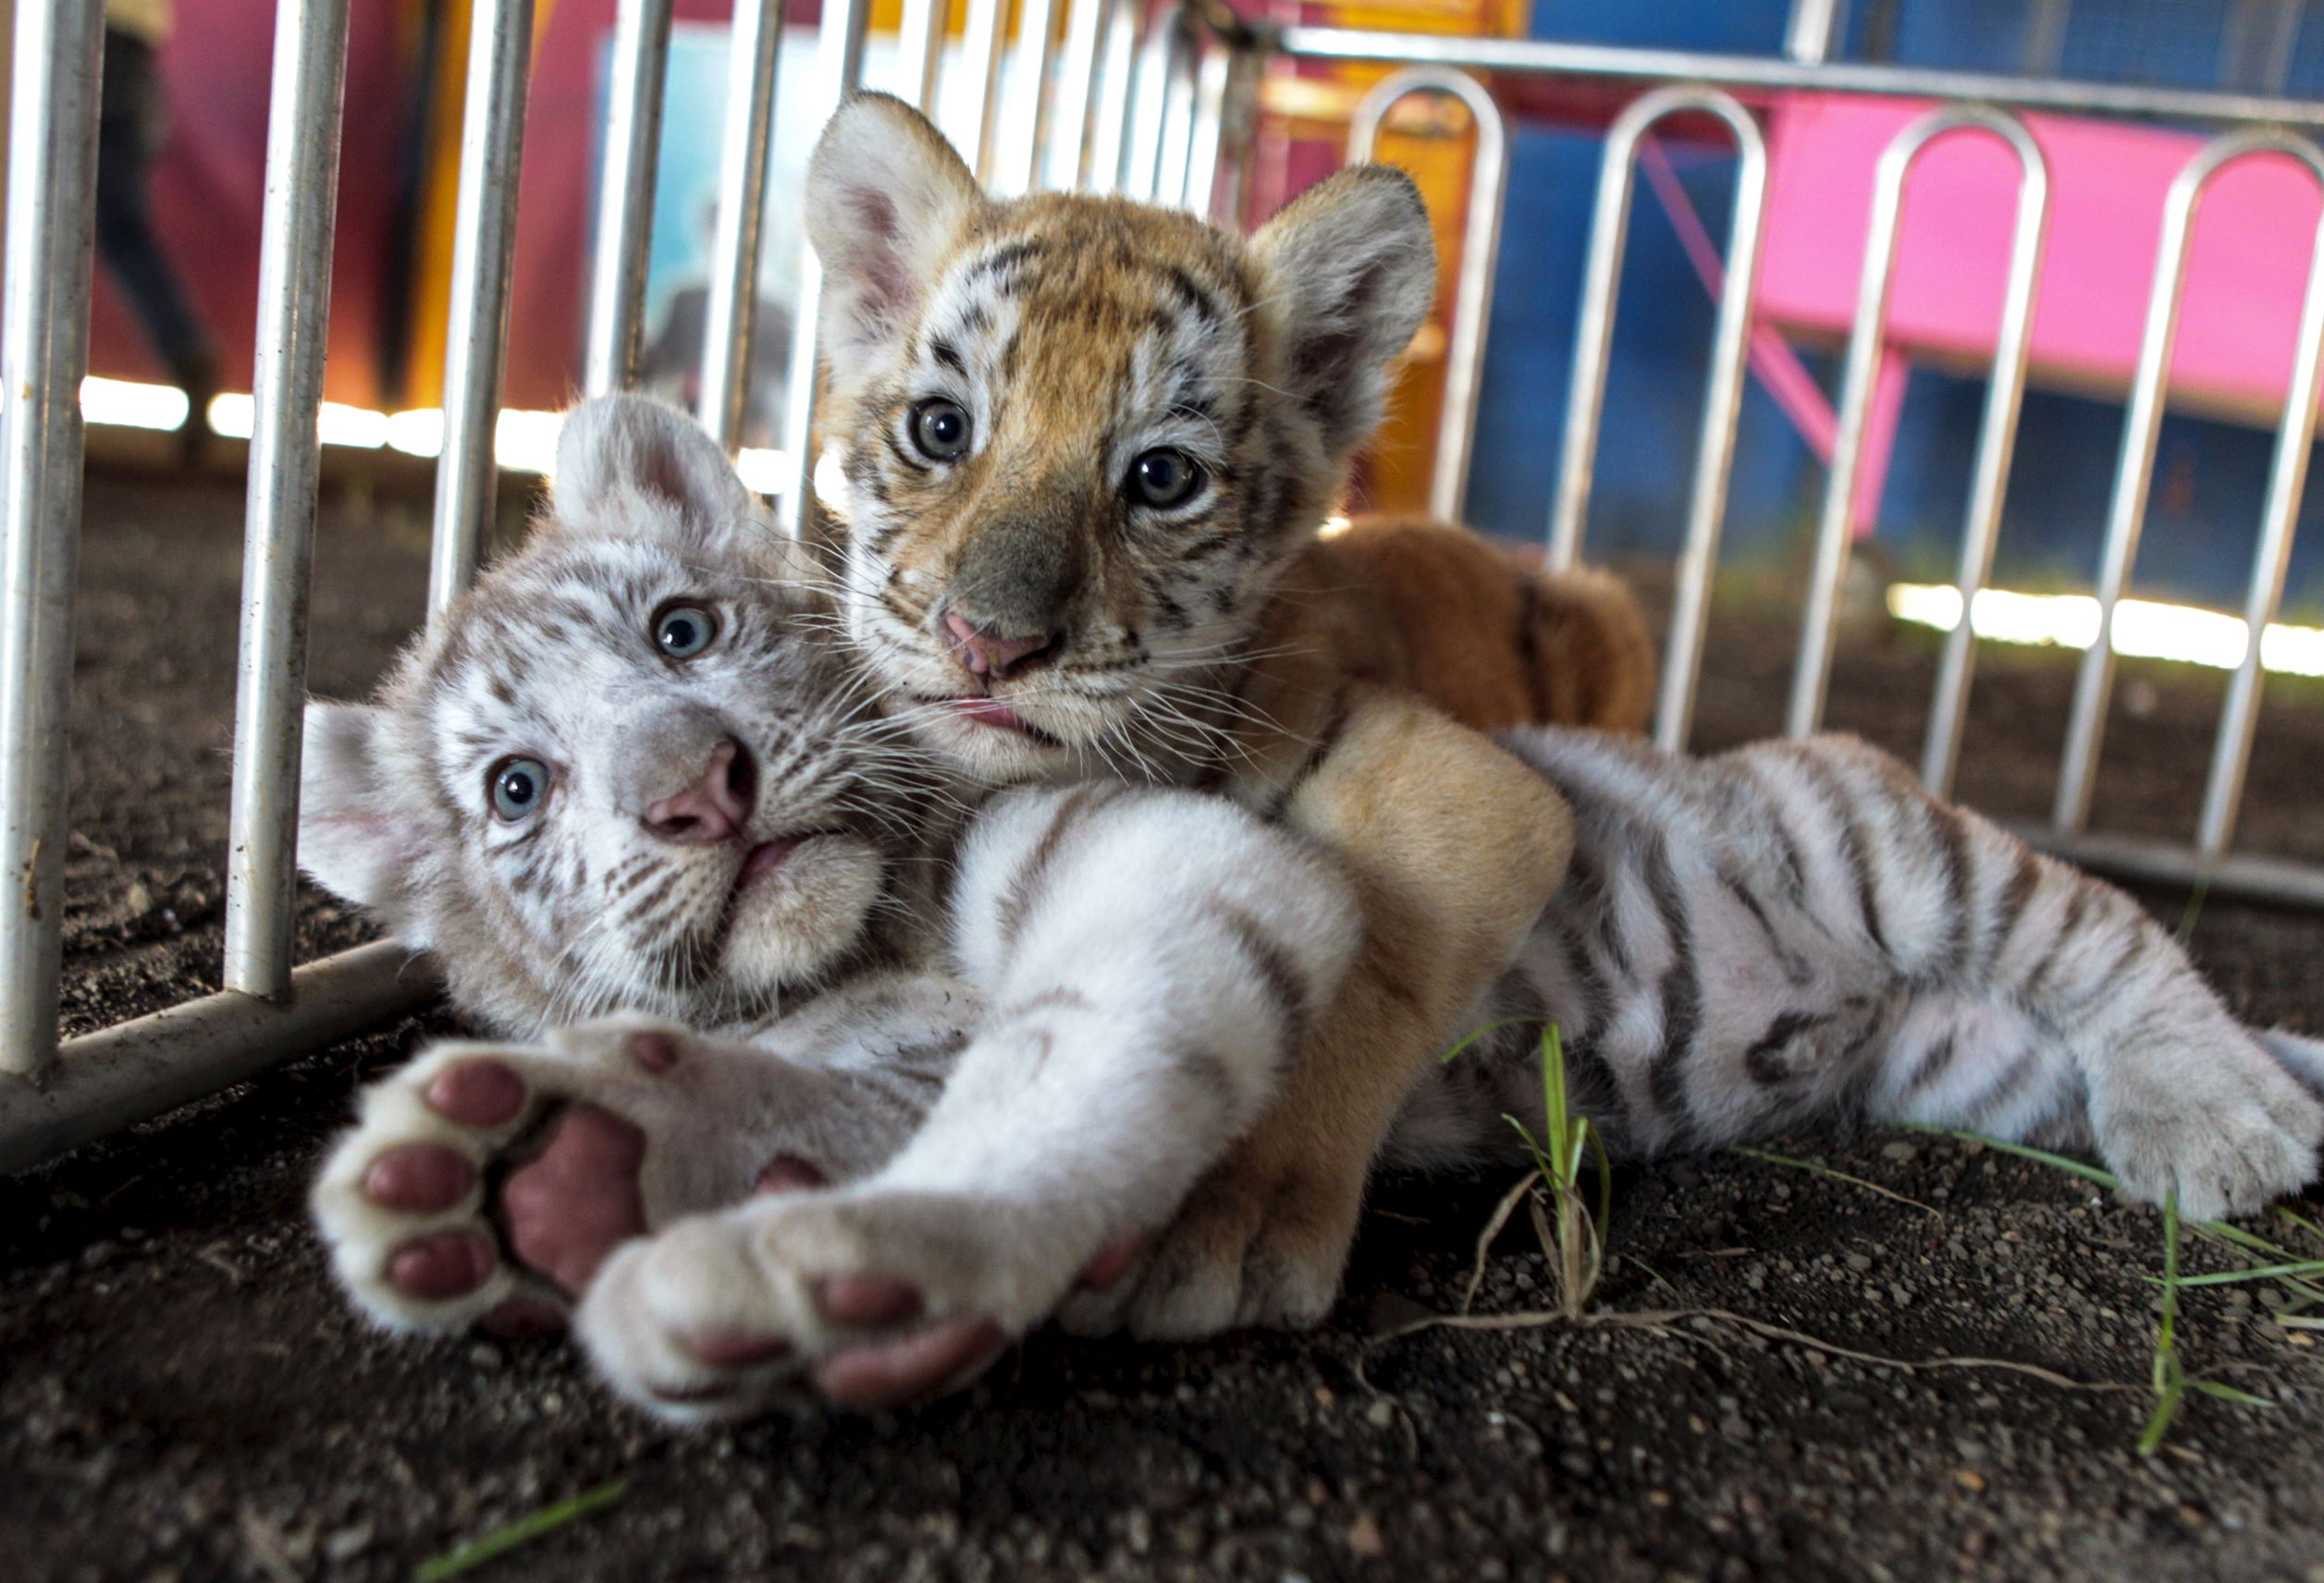 Слайд 51 из 67: A white Bengal tiger cub plays with its sister, a golden Bengal tiger cub, at the Circo de Renato (Renato Circus) in Ciudad Sandino, Nicaragua April 6, 2016. Picture taken April 6.